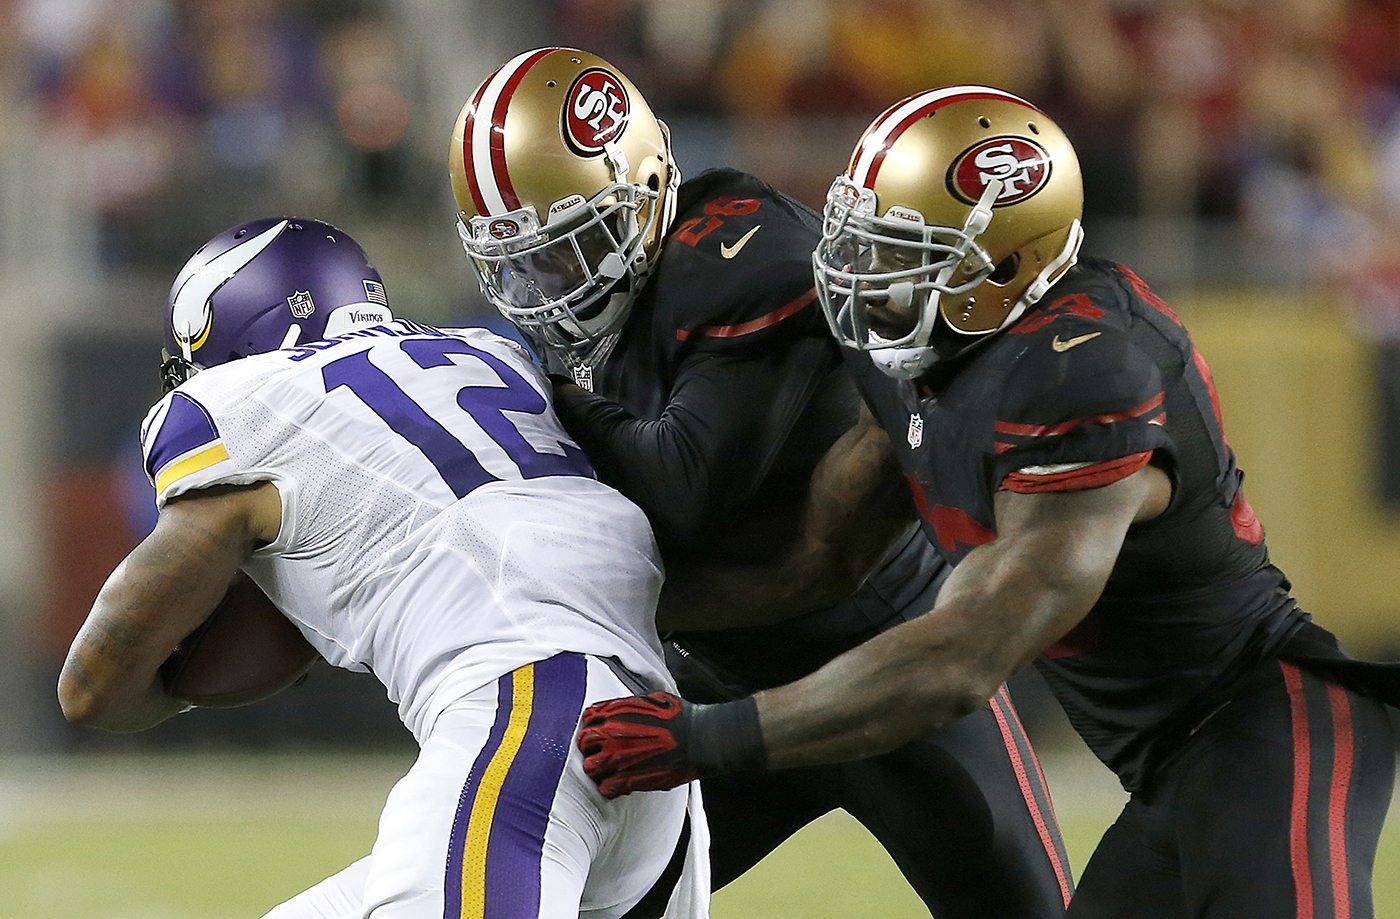 49ers linebacker NaVorro Bowman, right, and cornerback Tramaine Brock tackle Minnesota Vikings wide receiver Charles Johnson (12) during the second half of game on Monday. (AP Photo/Tony Avelar)